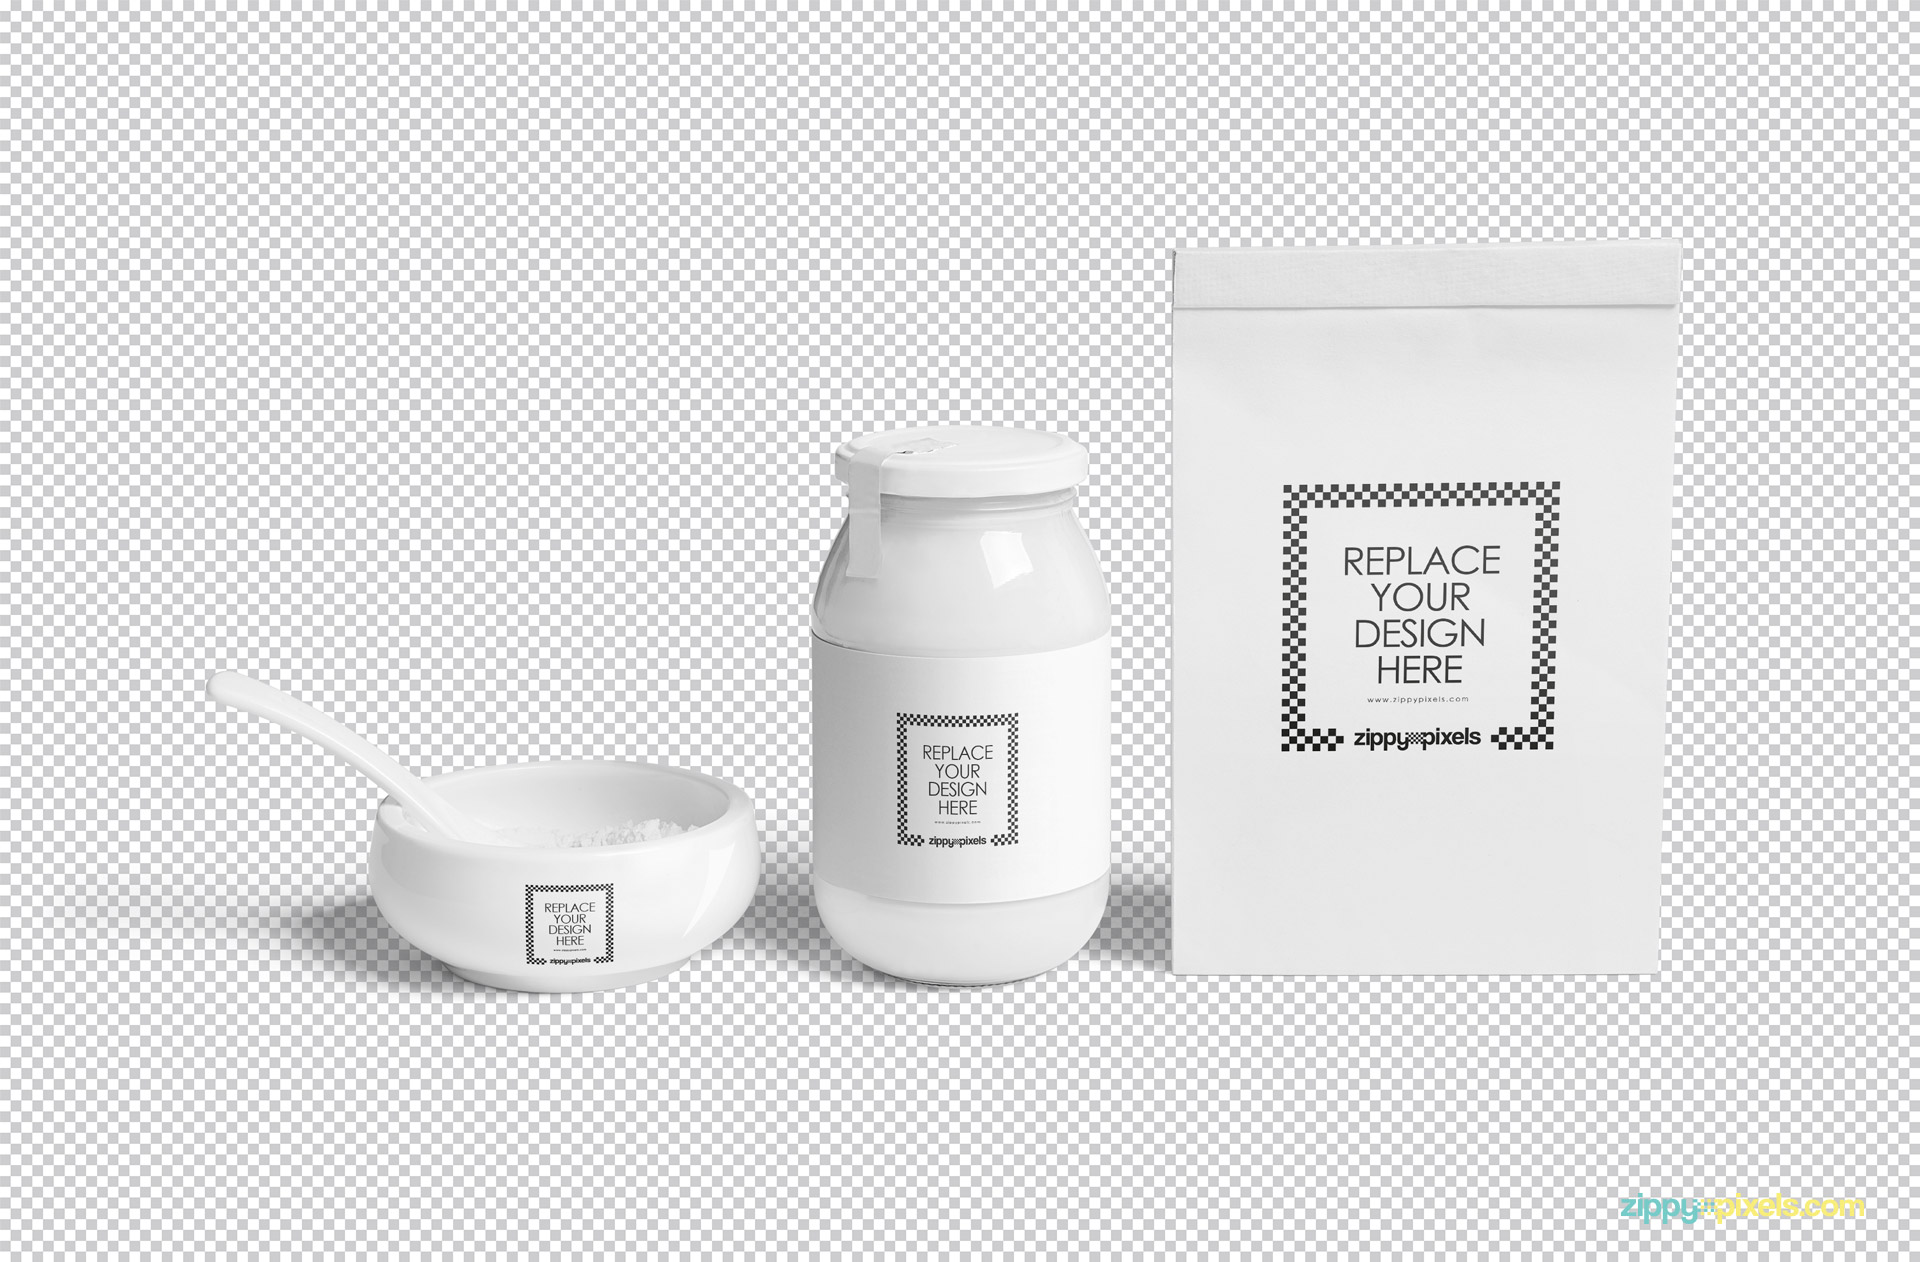 Use Adobe Photoshop to edit every single part of this free jar mockup.